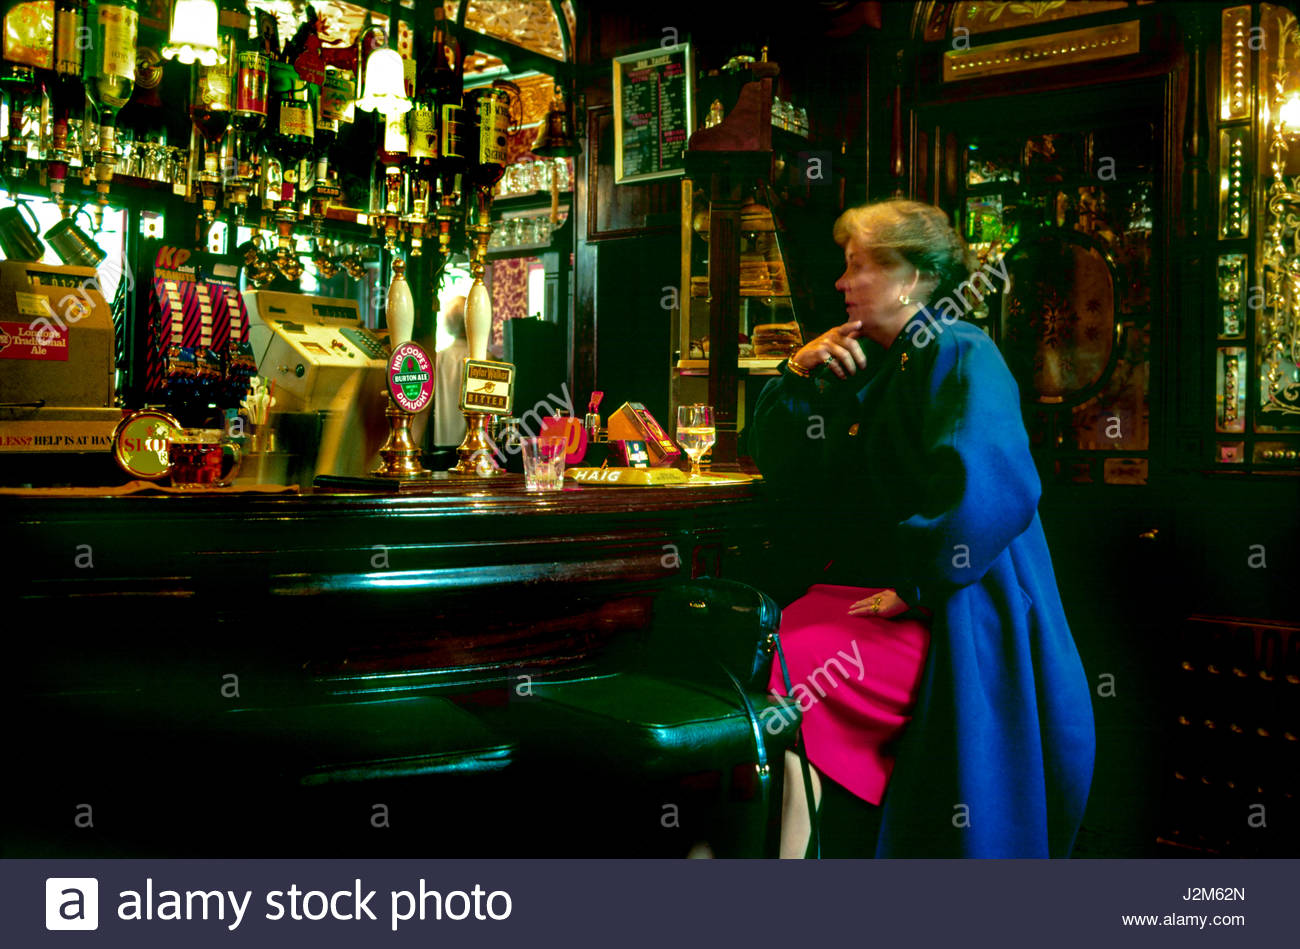 Duke of York, St. James's, London, England, United Kingdom. Woman sitting at bar counter in the Red Lion Pub. - Stock Image